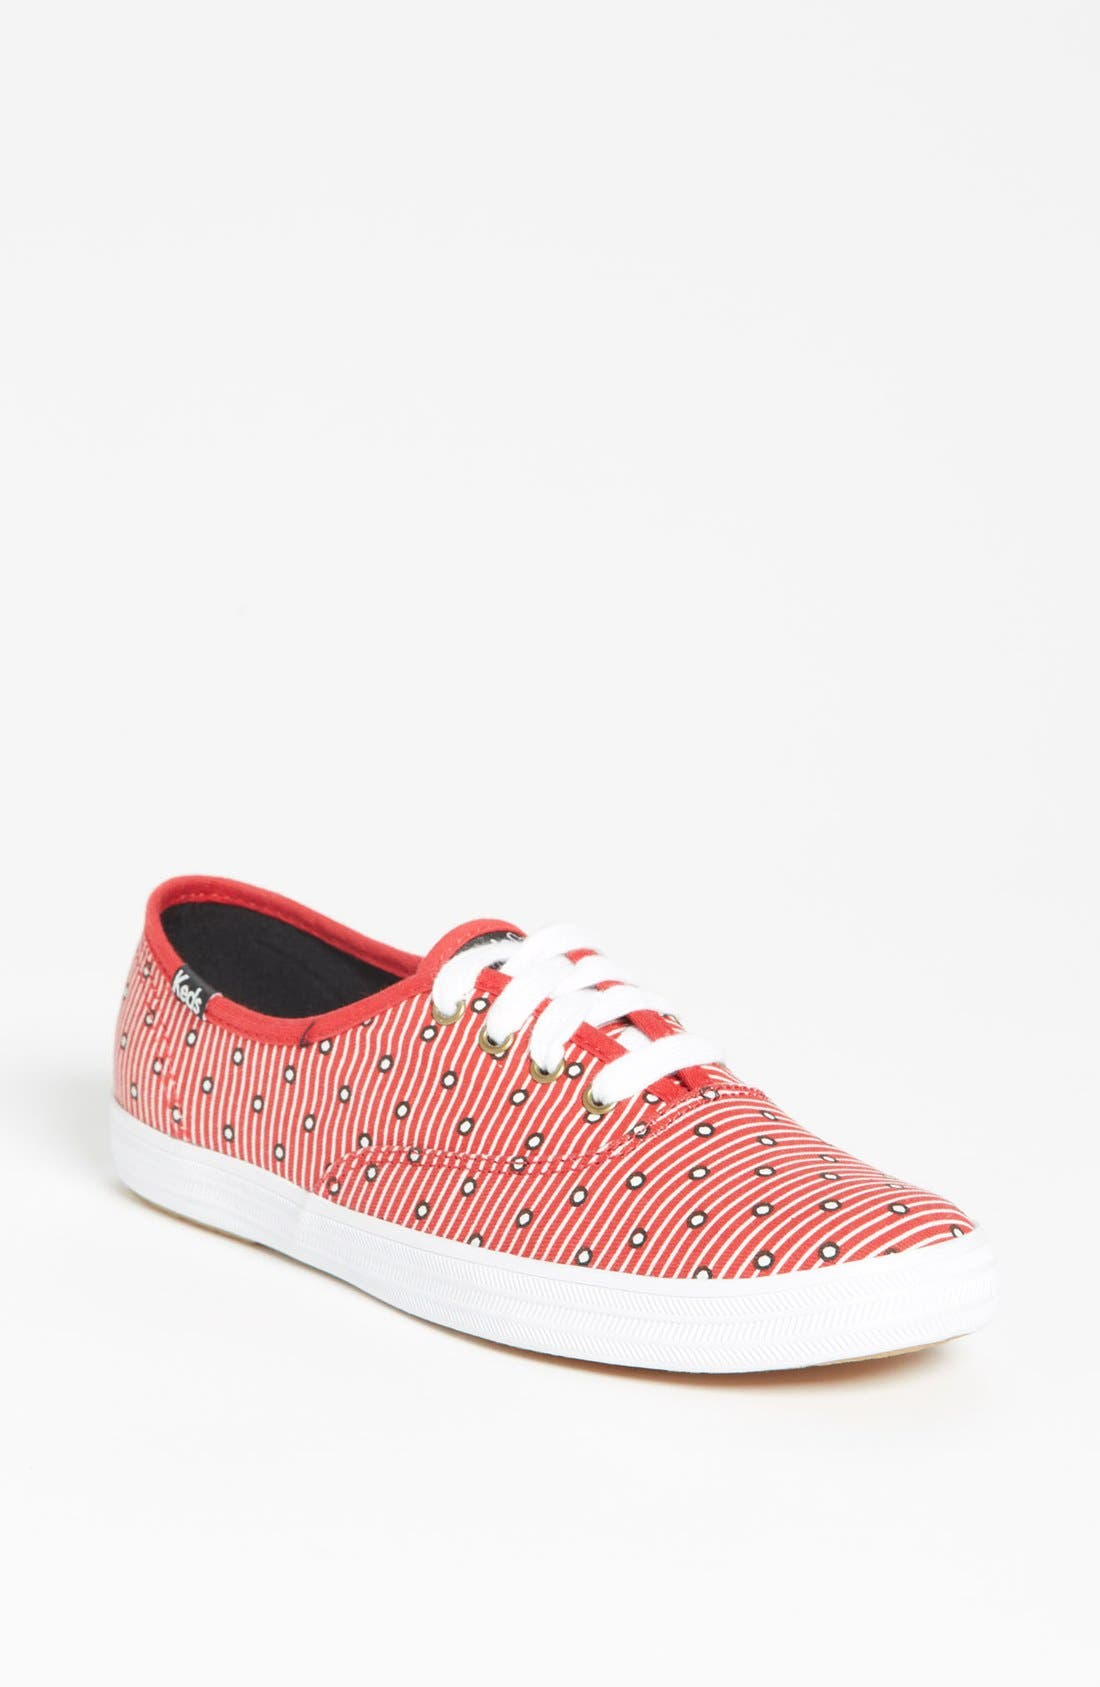 Main Image - Keds® Taylor Swift 'Dot' Champion Sneaker (Limited Edition) (Nordstrom Exclusive)